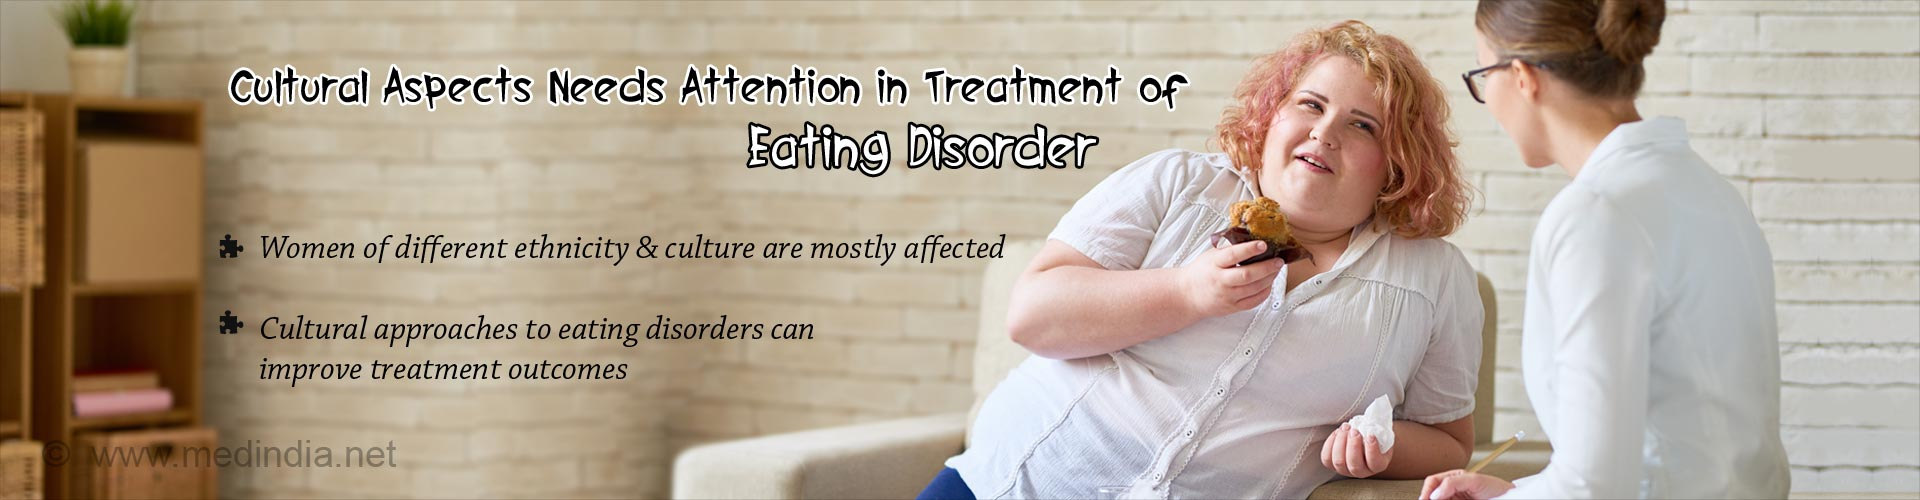 Eating Disorder Treatment Should Consider Cultural Aspects